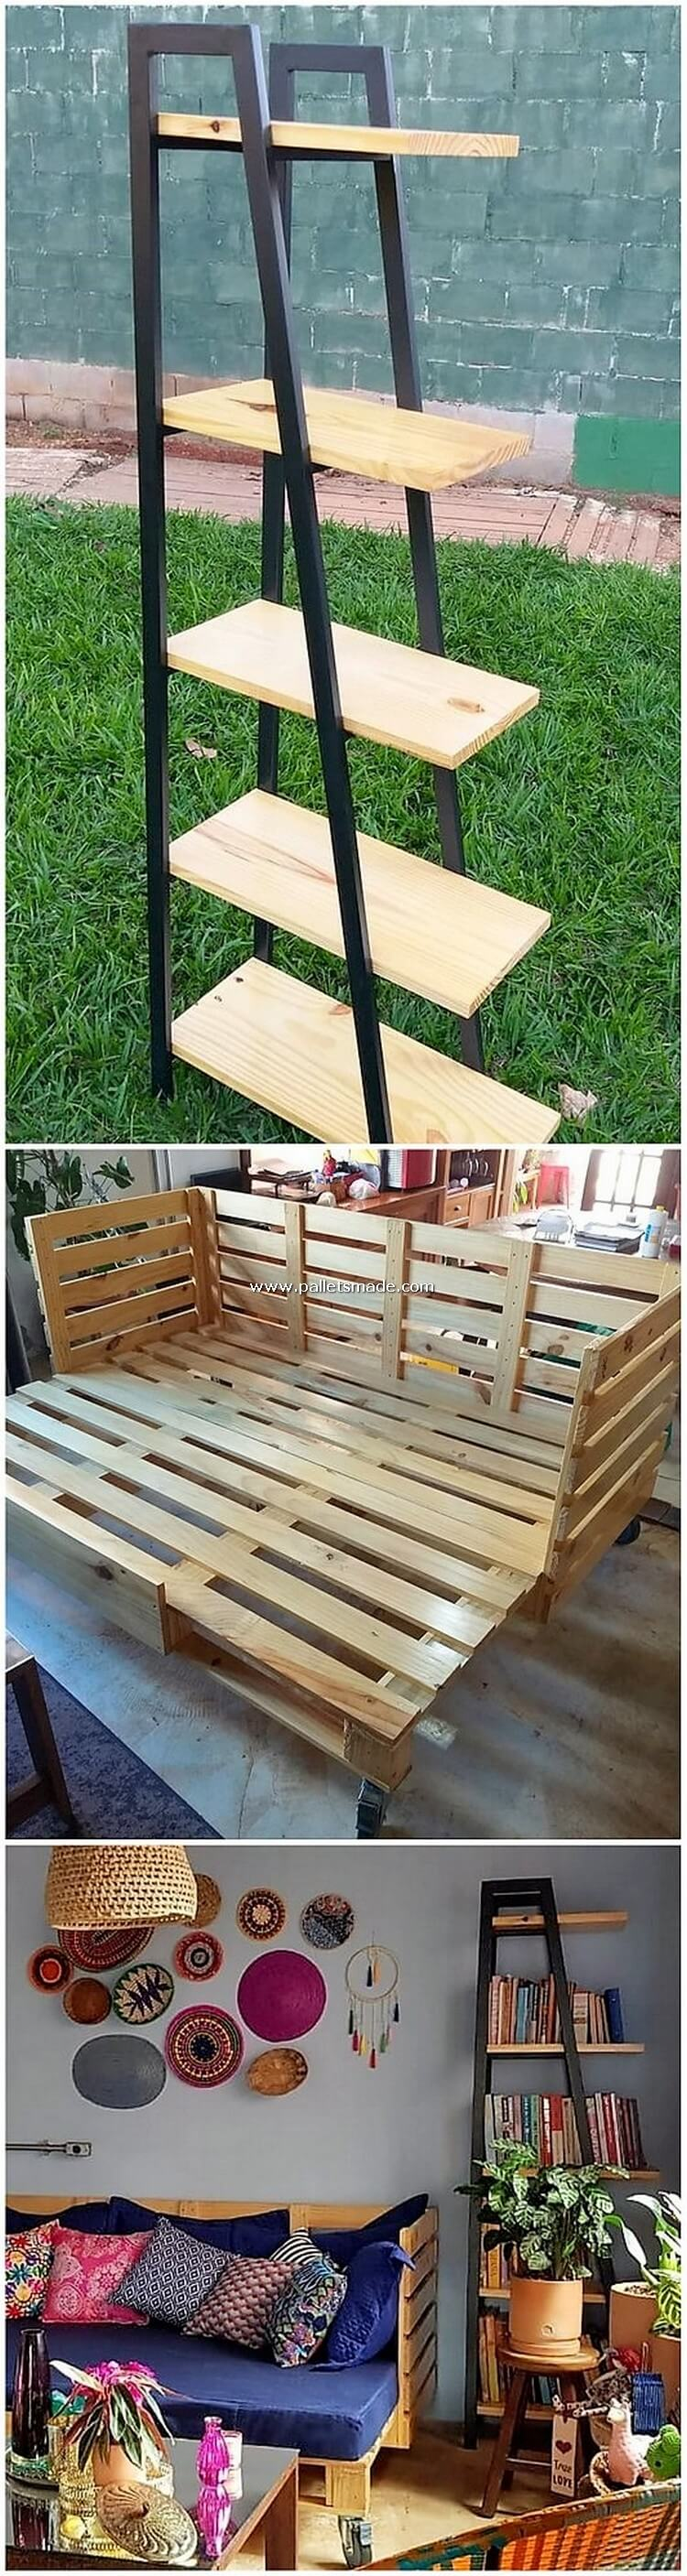 Pallet Shelving Unit and Bench